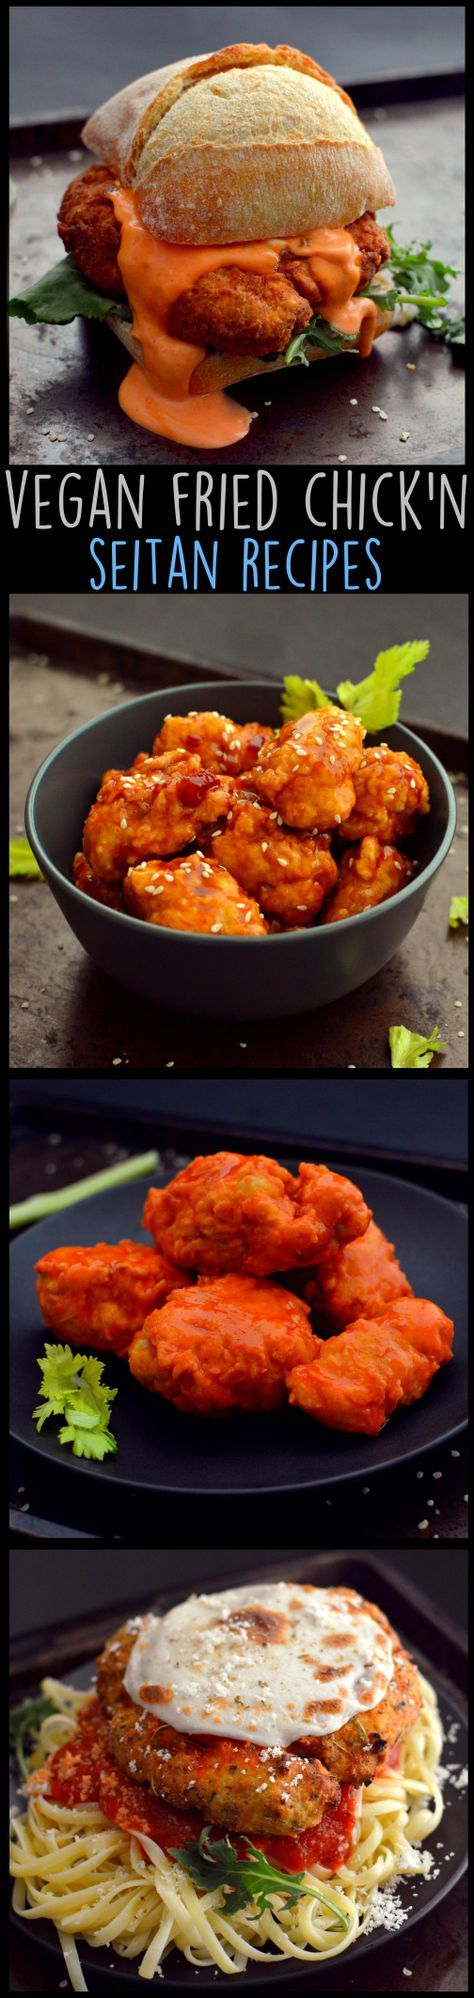 4 Vegan Fried Chicken Recipes - Seitan - Buffalo Wings, Spicy Chicken Sandwich, Chinese Food, Parmesan - Wheat Meat - Soy Free - Rich Bitch Cooking Blog